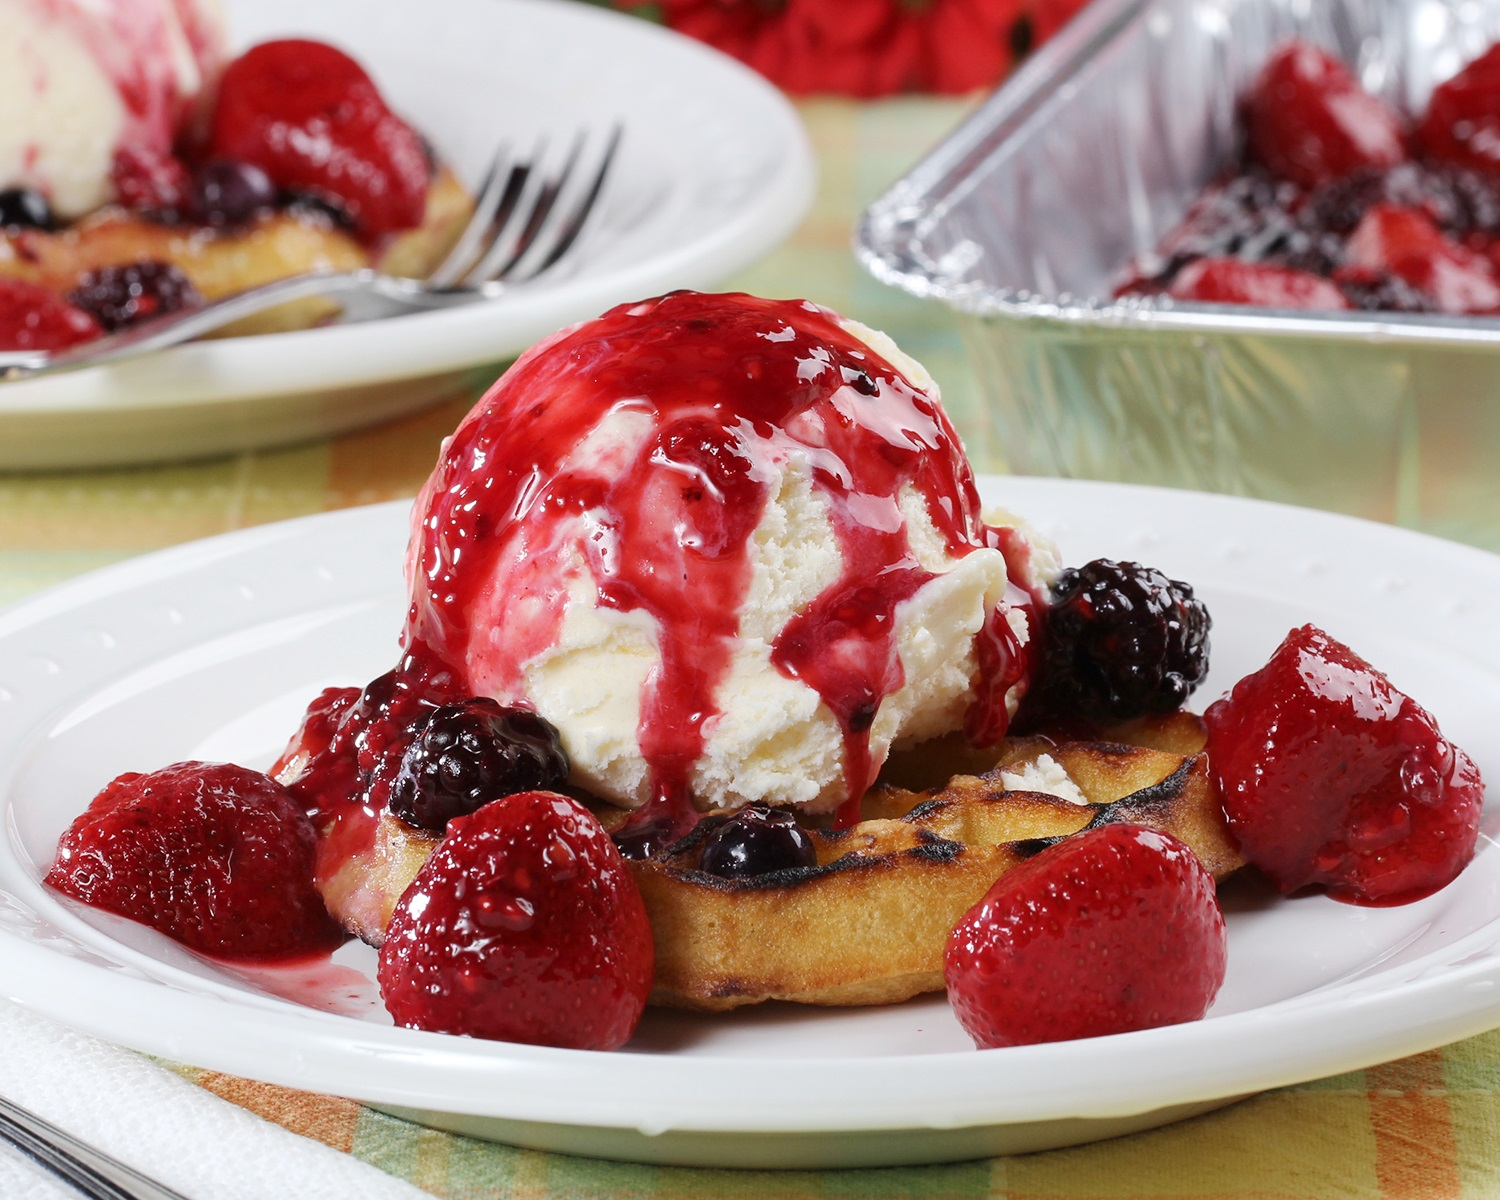 Grilled Waffle Sundae with Berry Sauce